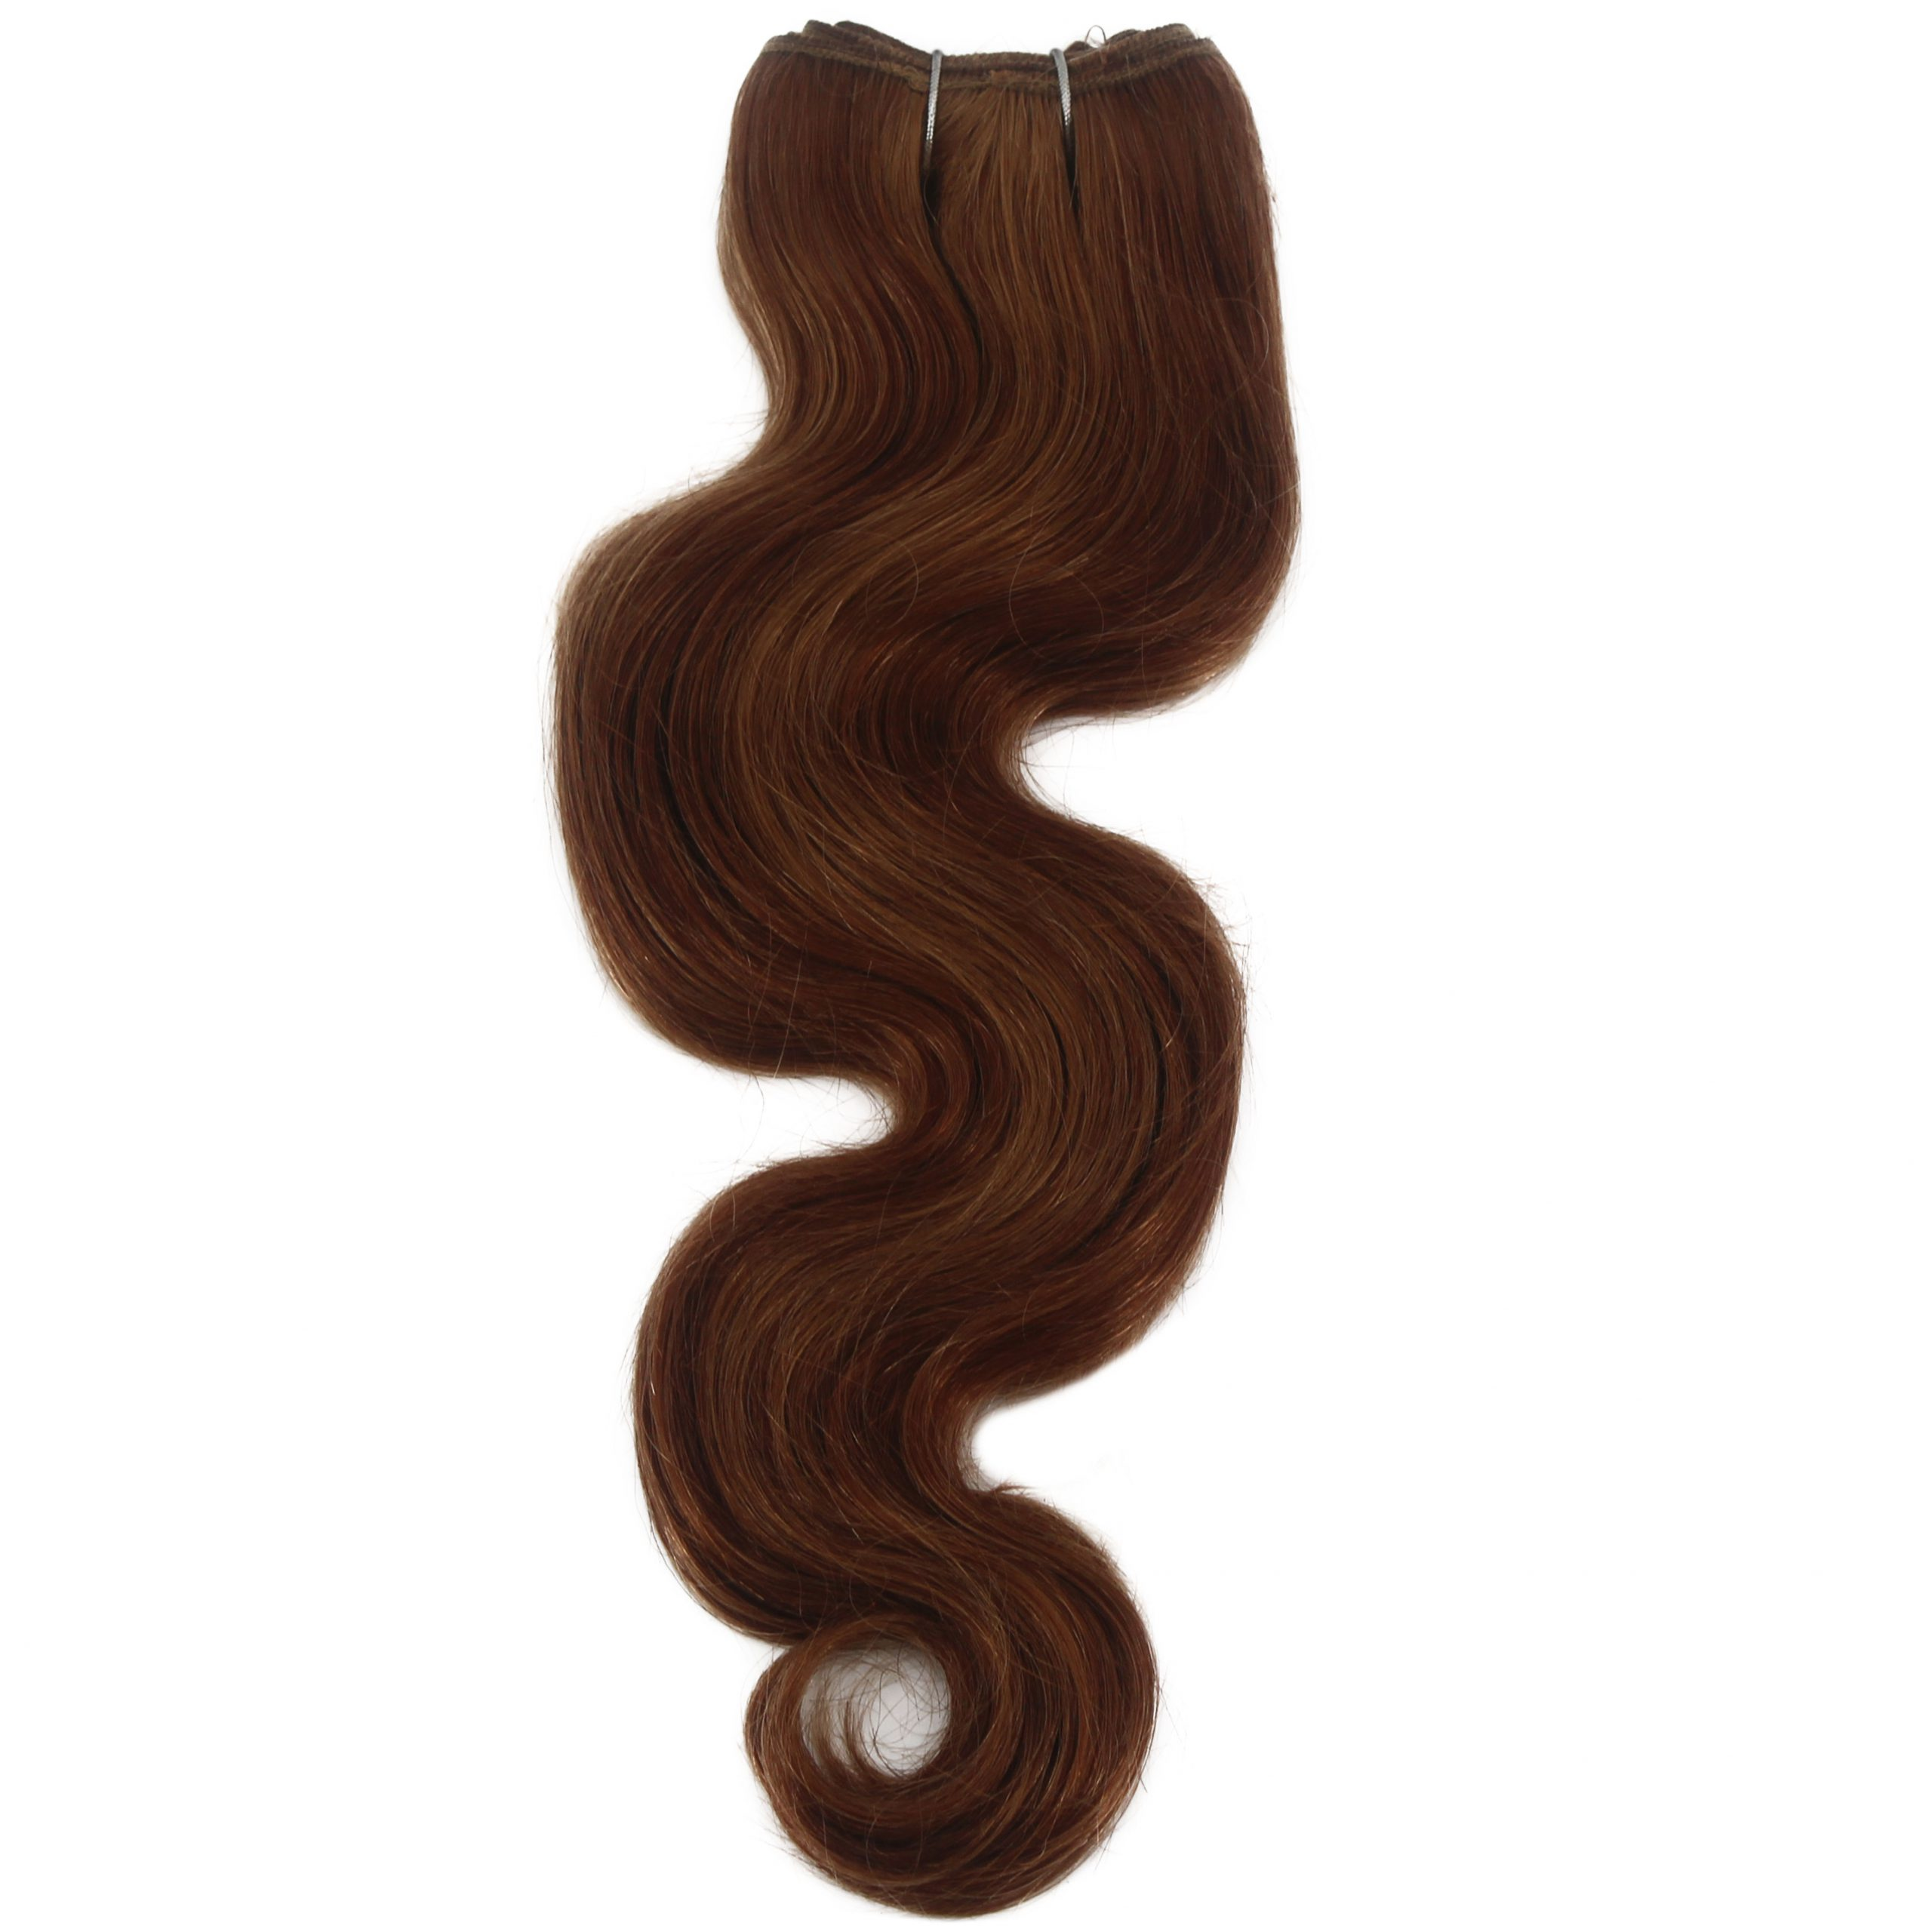 BODY WAVE 100% HUMAN HAIR 10 Inch - P27/30